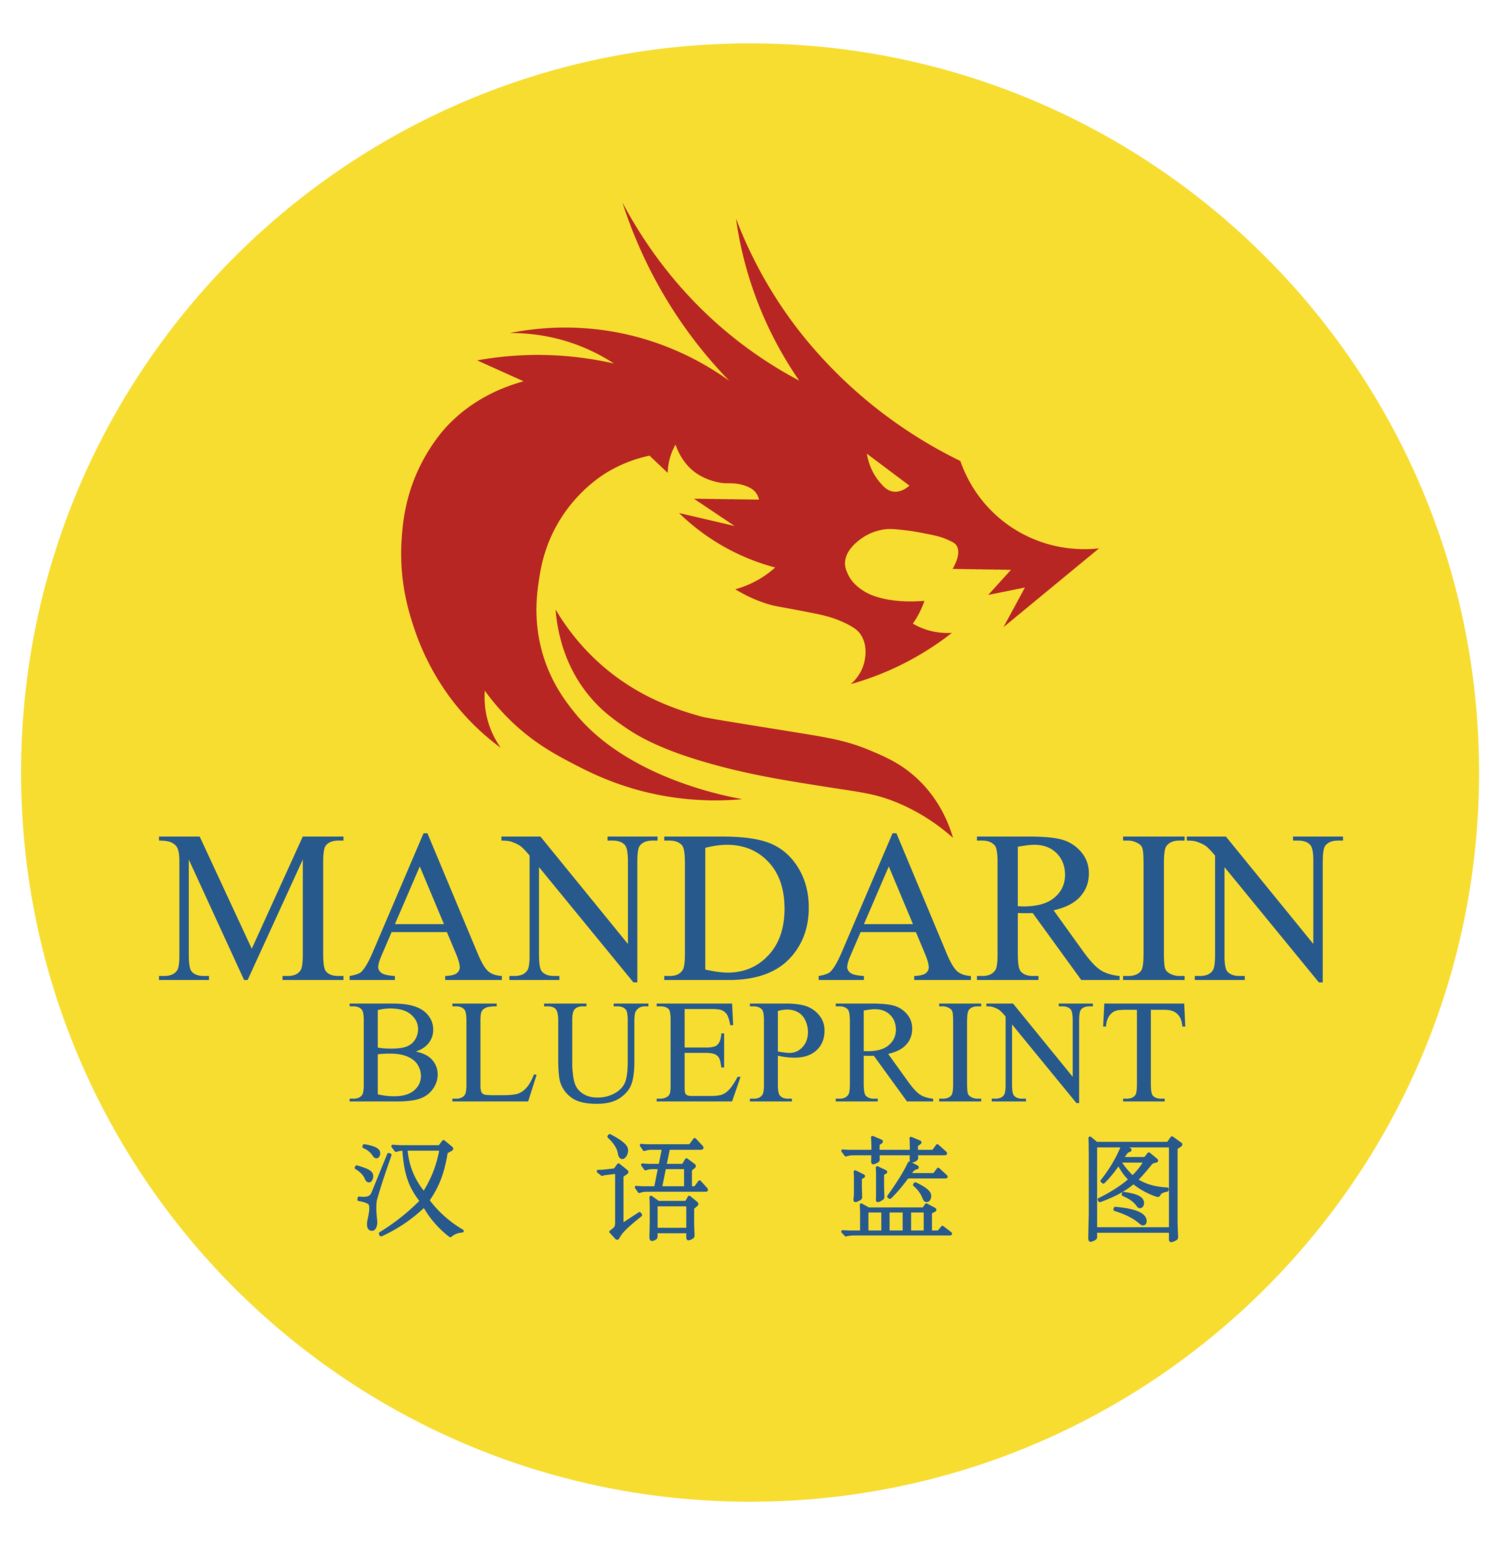 Mandarin Blueprint